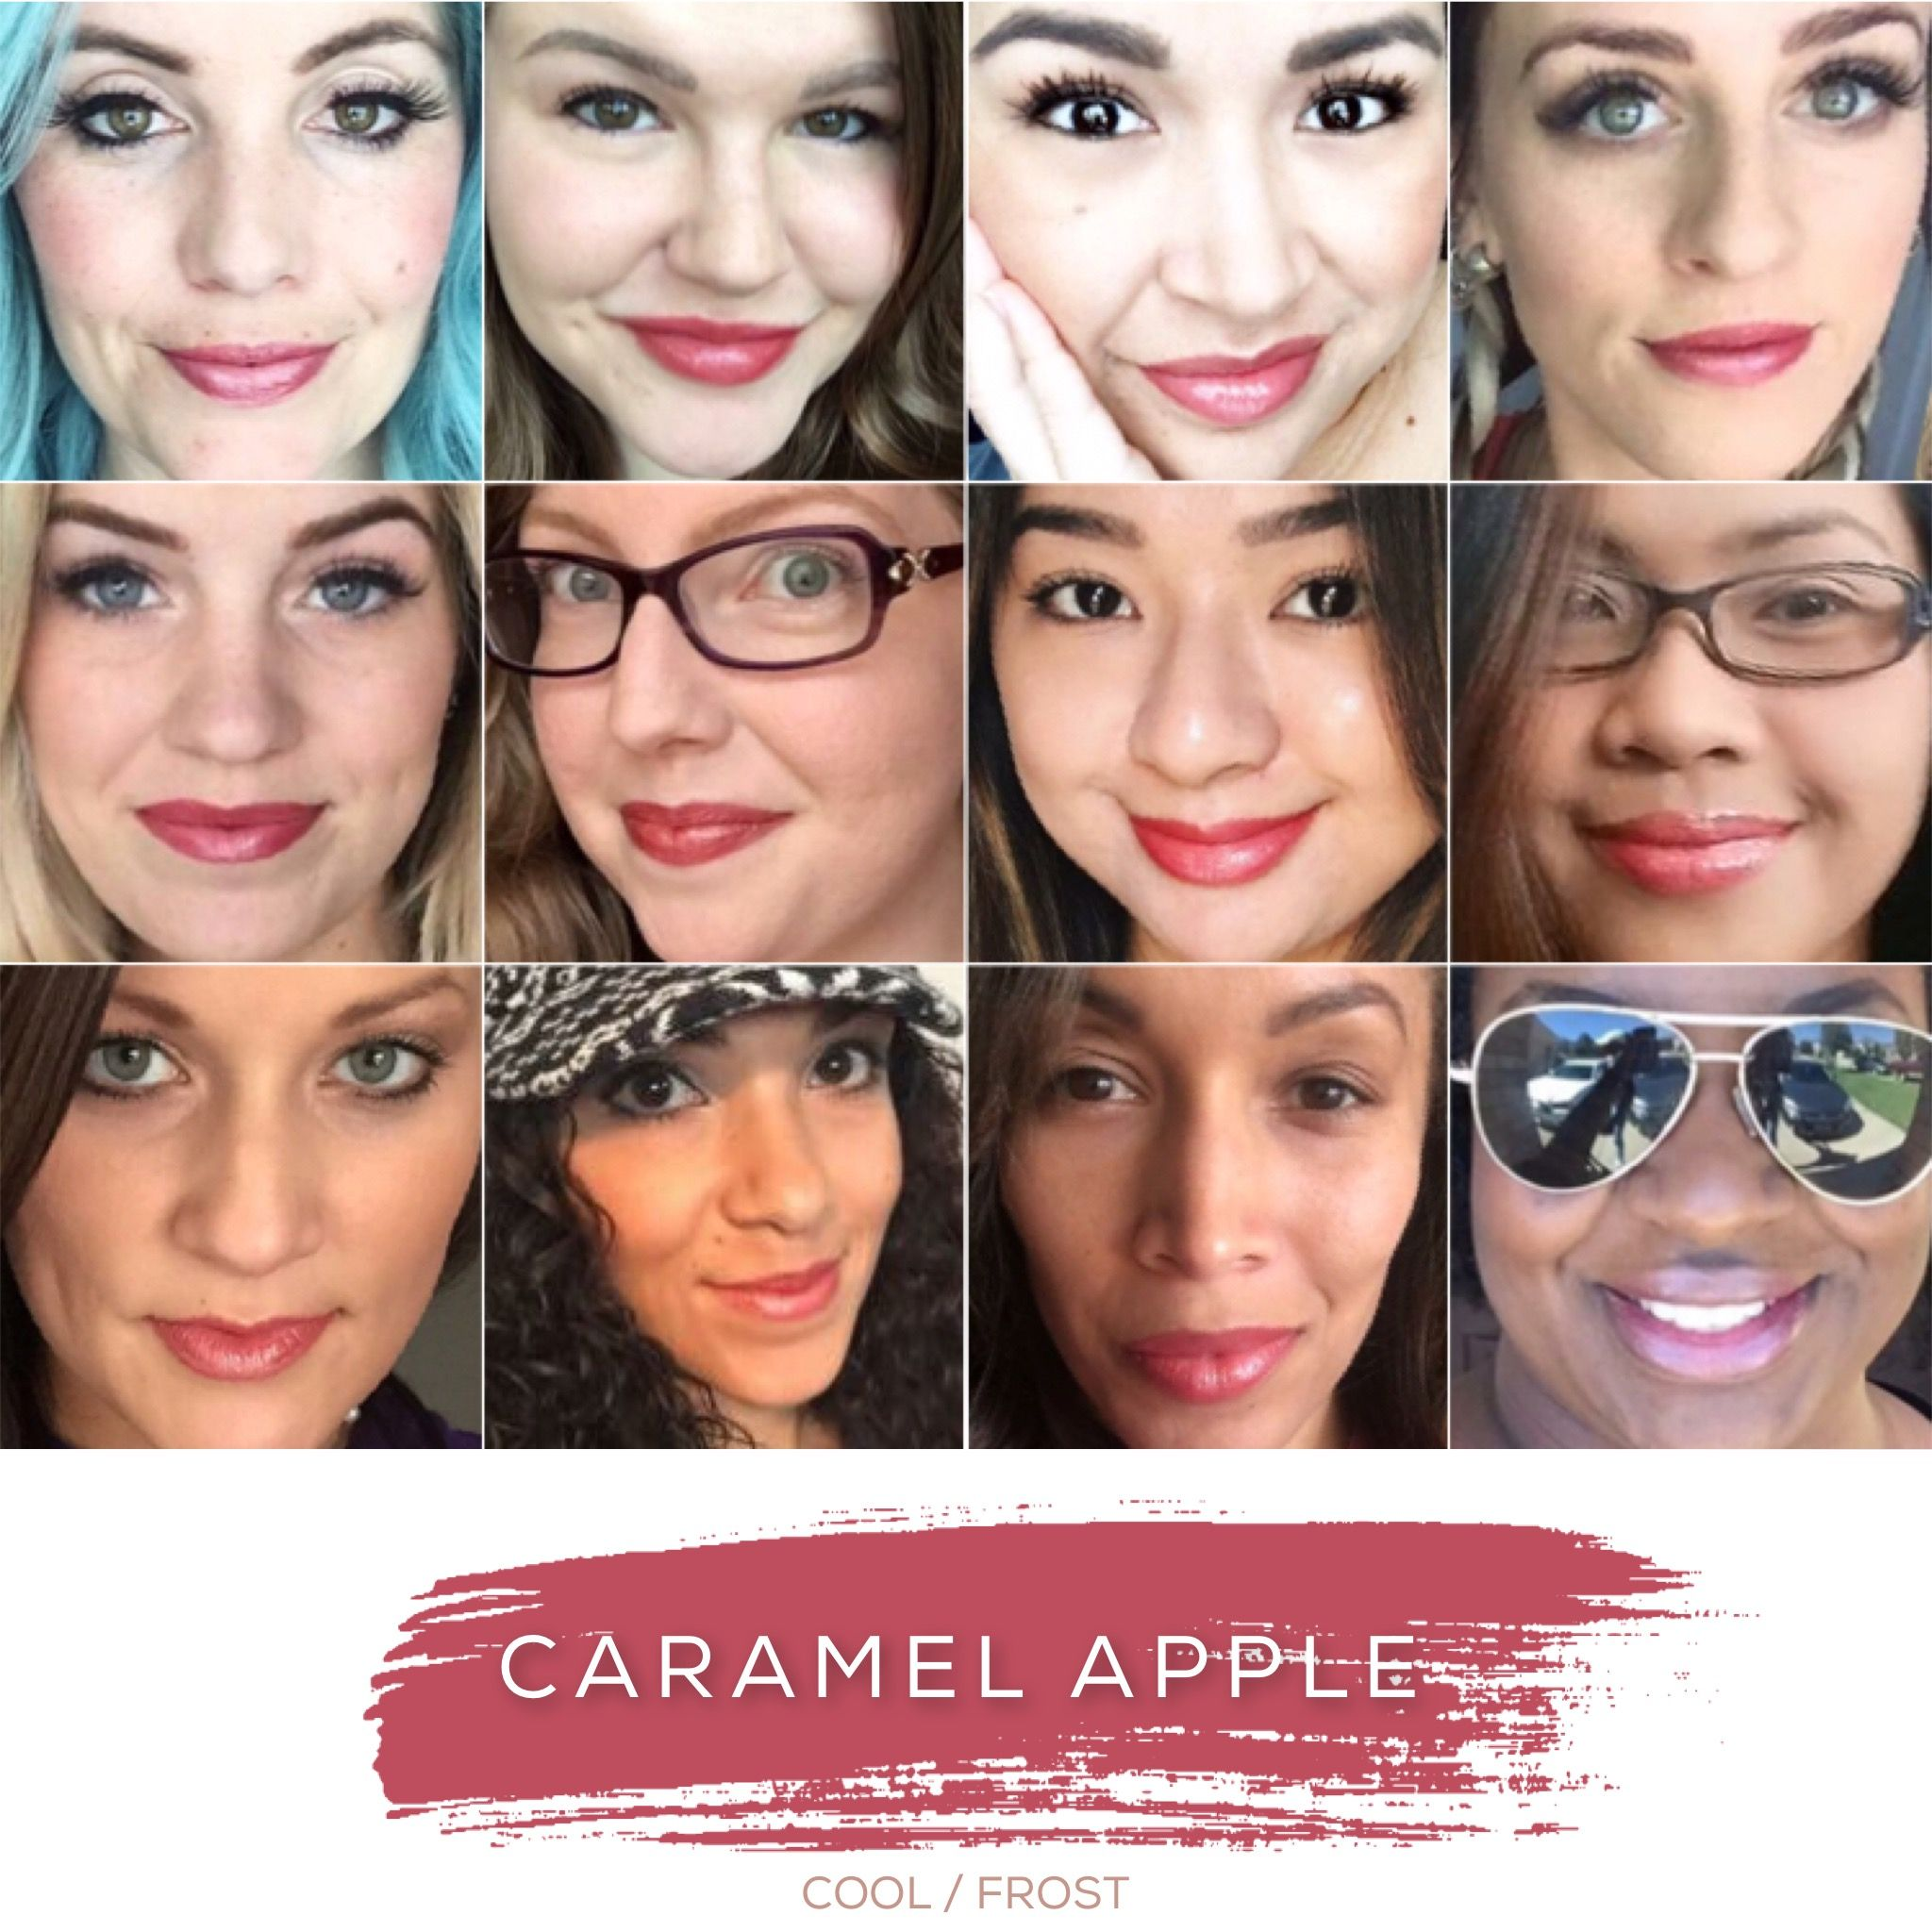 """TEXT """"I WANT TO ORDER"""" to 647-217-0676  OR  Email me: amythorpe_mylipsaresealed@outlook.com   CANADIAN LIPSENSE DISTRIBUTOR  #244119 Amy Thorpe CARAMEL APPLE LIPSENSE JOIN FACEBOOK GROUP TO VIEW ALBUM!!! www.facebook.com/groups/amymylipsaresealed"""